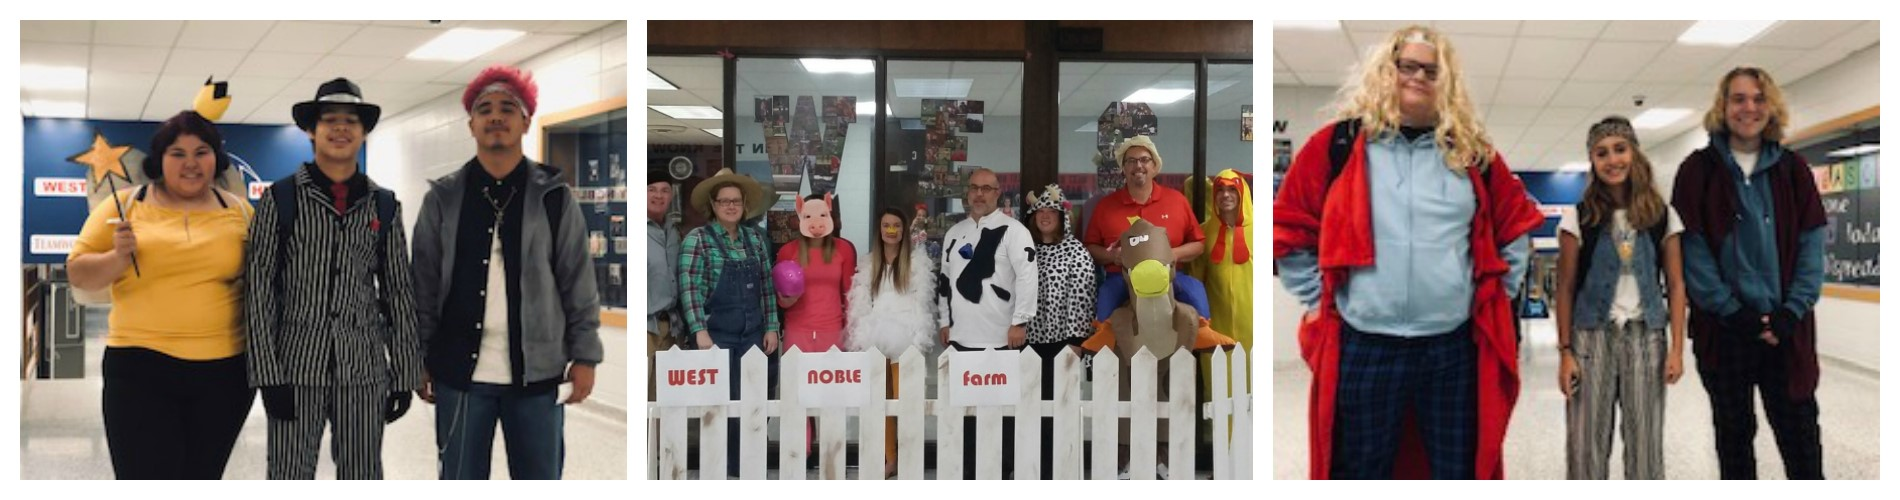 West Noble High School staff dressed for Halloween.